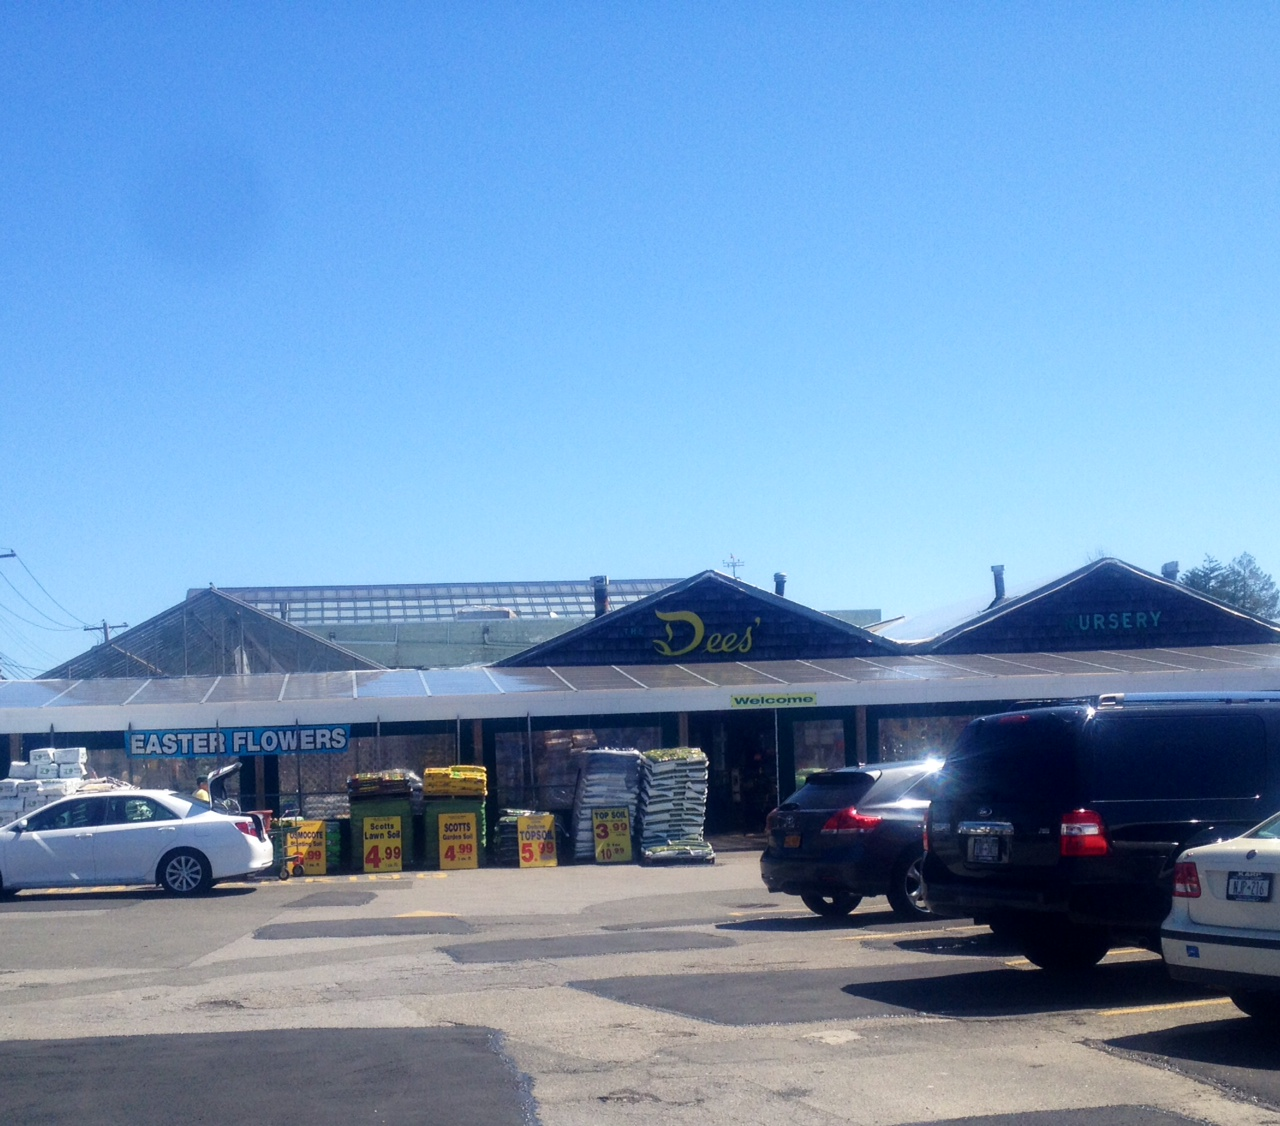 The Dees Nursery Long Island S Most Beloved Garden Center Traveling With Jared